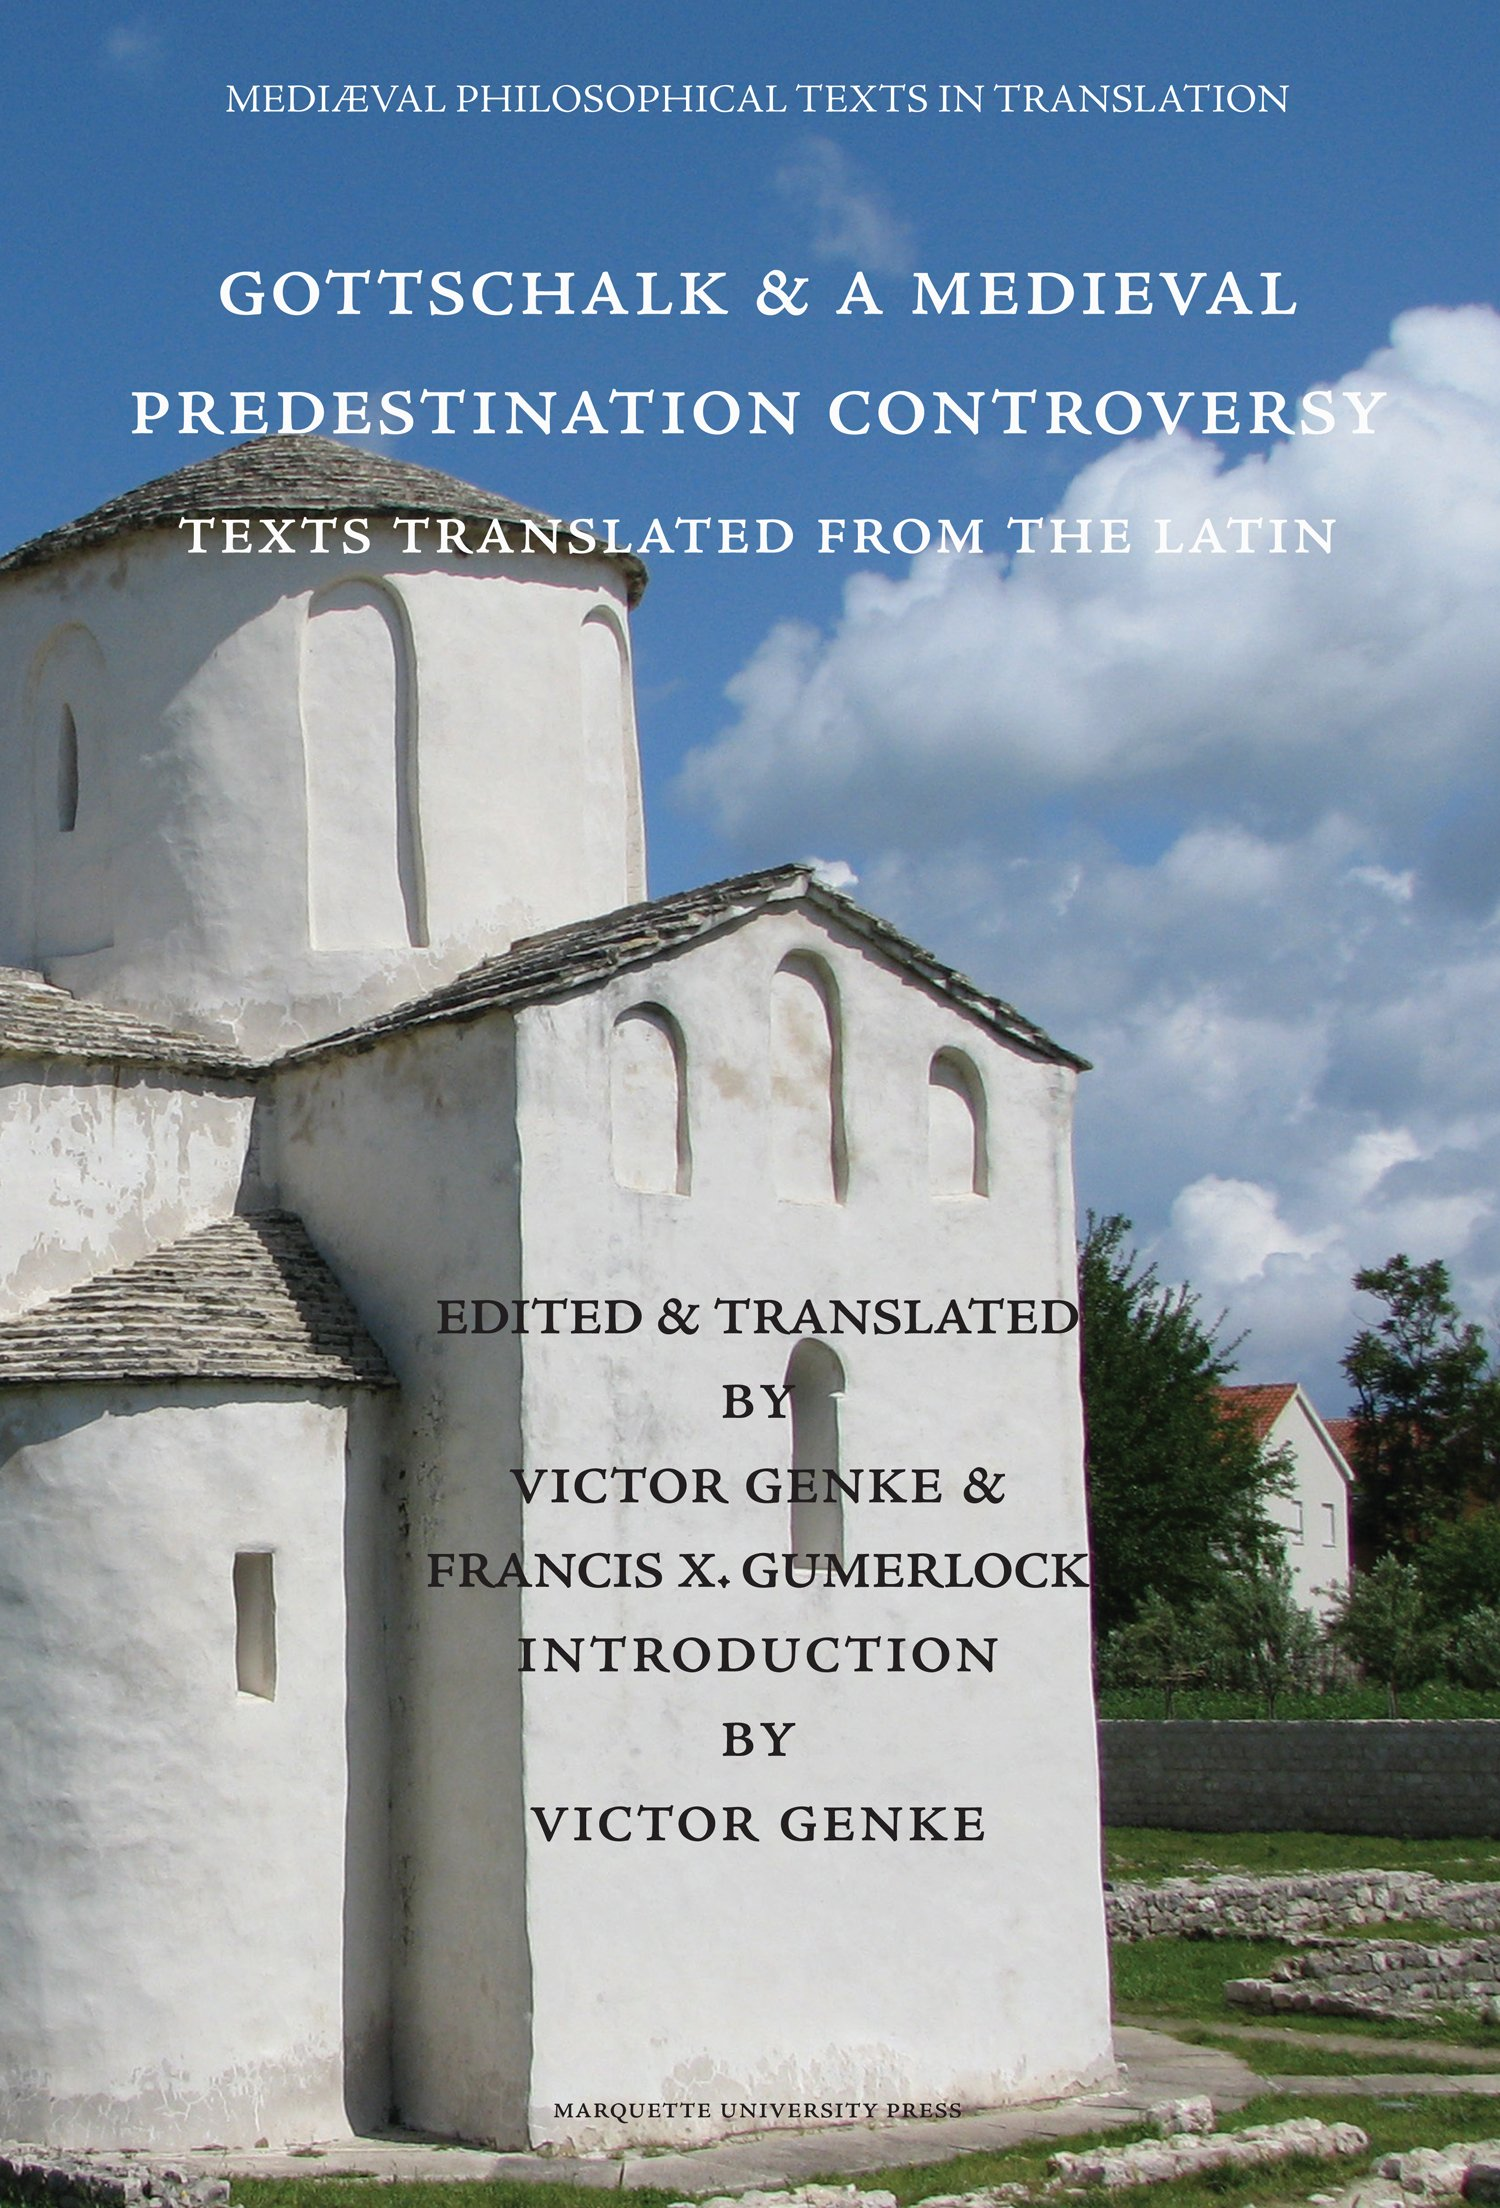 Gottschalk & A Medieval Predestination Controversy (Texts Translated ...